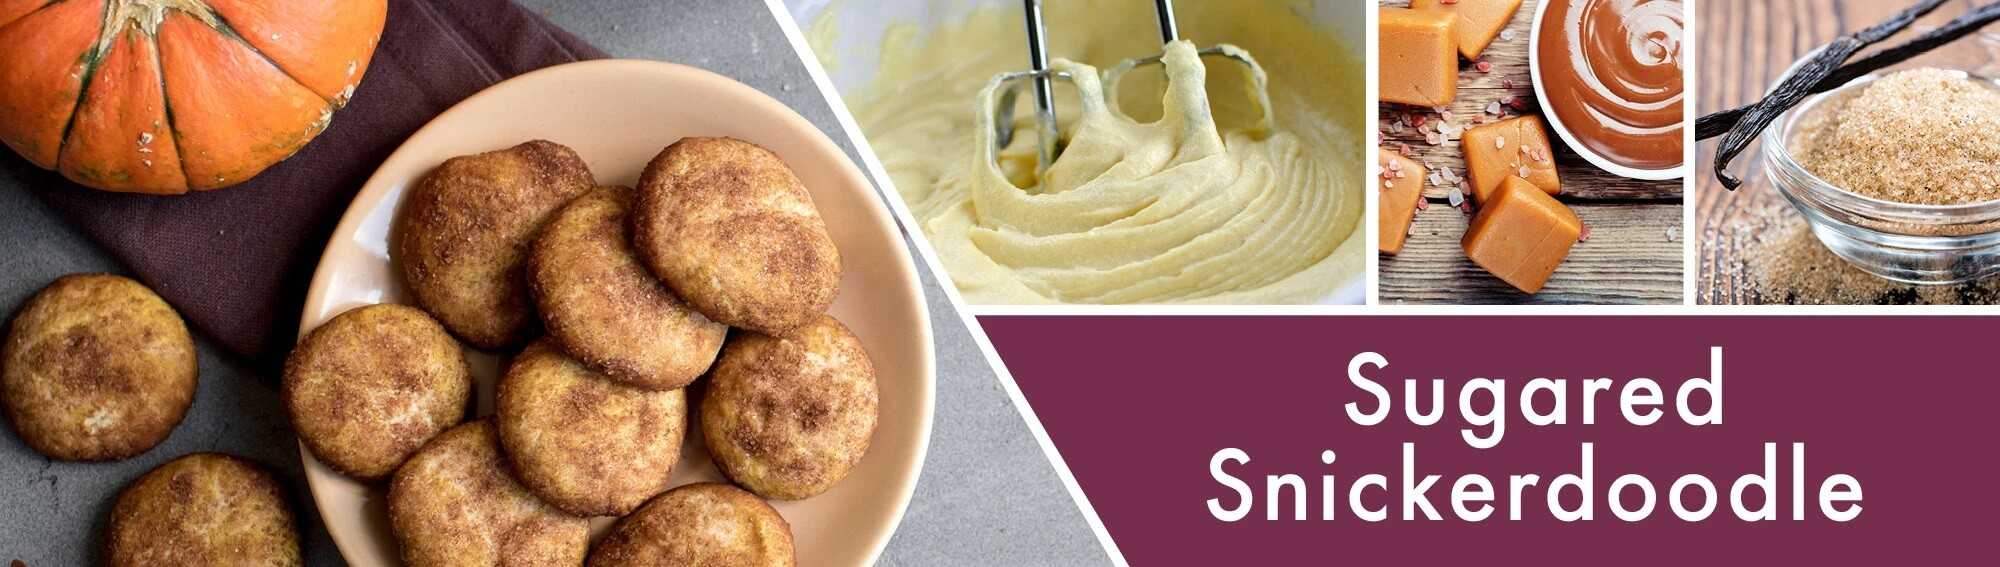 Sugared-Snickerdoodle-Banner